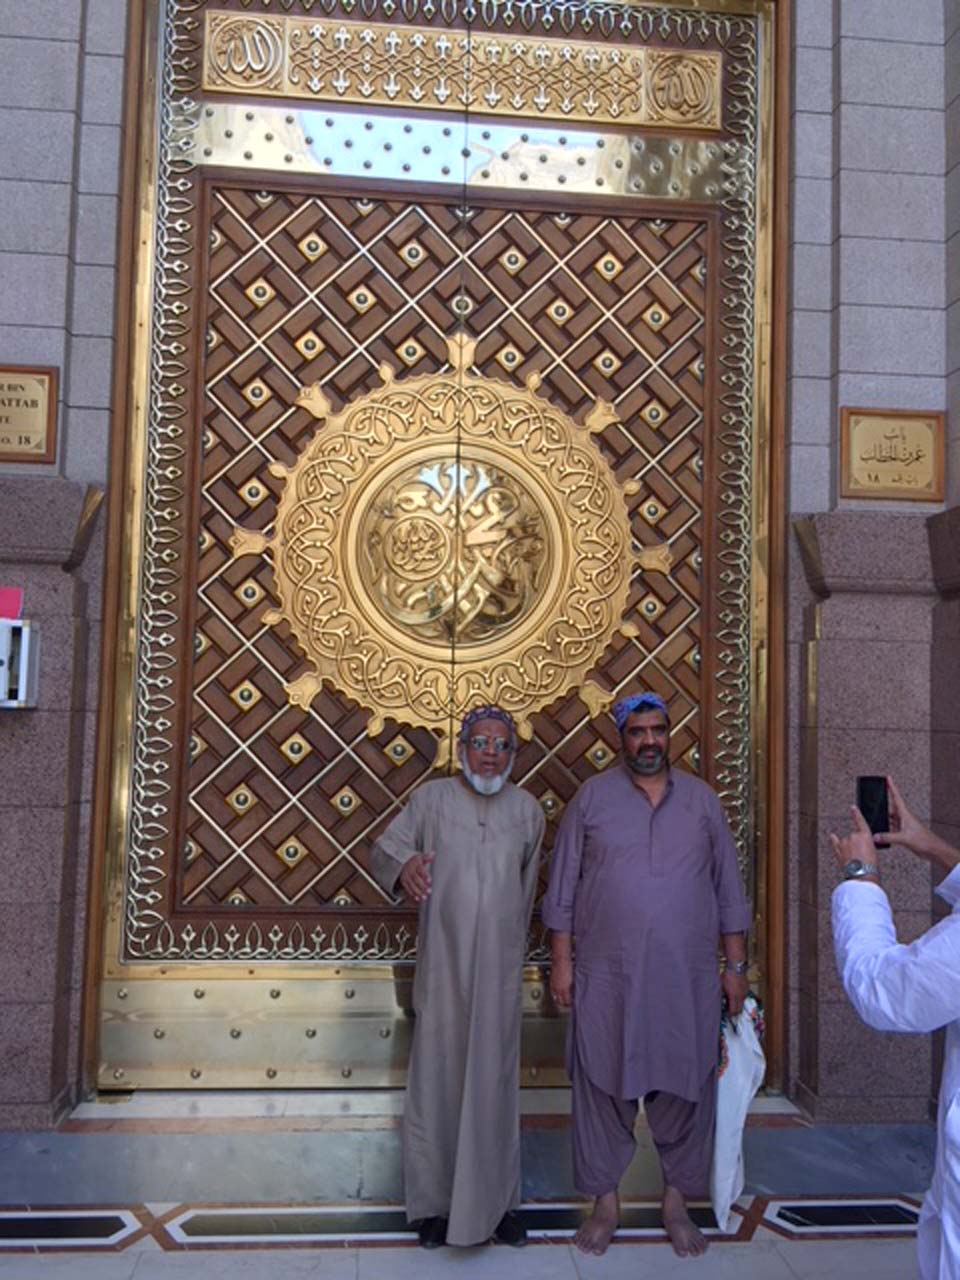 Engr. Iqbal Ahmed Khan and Imran Ahmed Khan Ghouri at the entry gate of Masjid-e-Nabwi